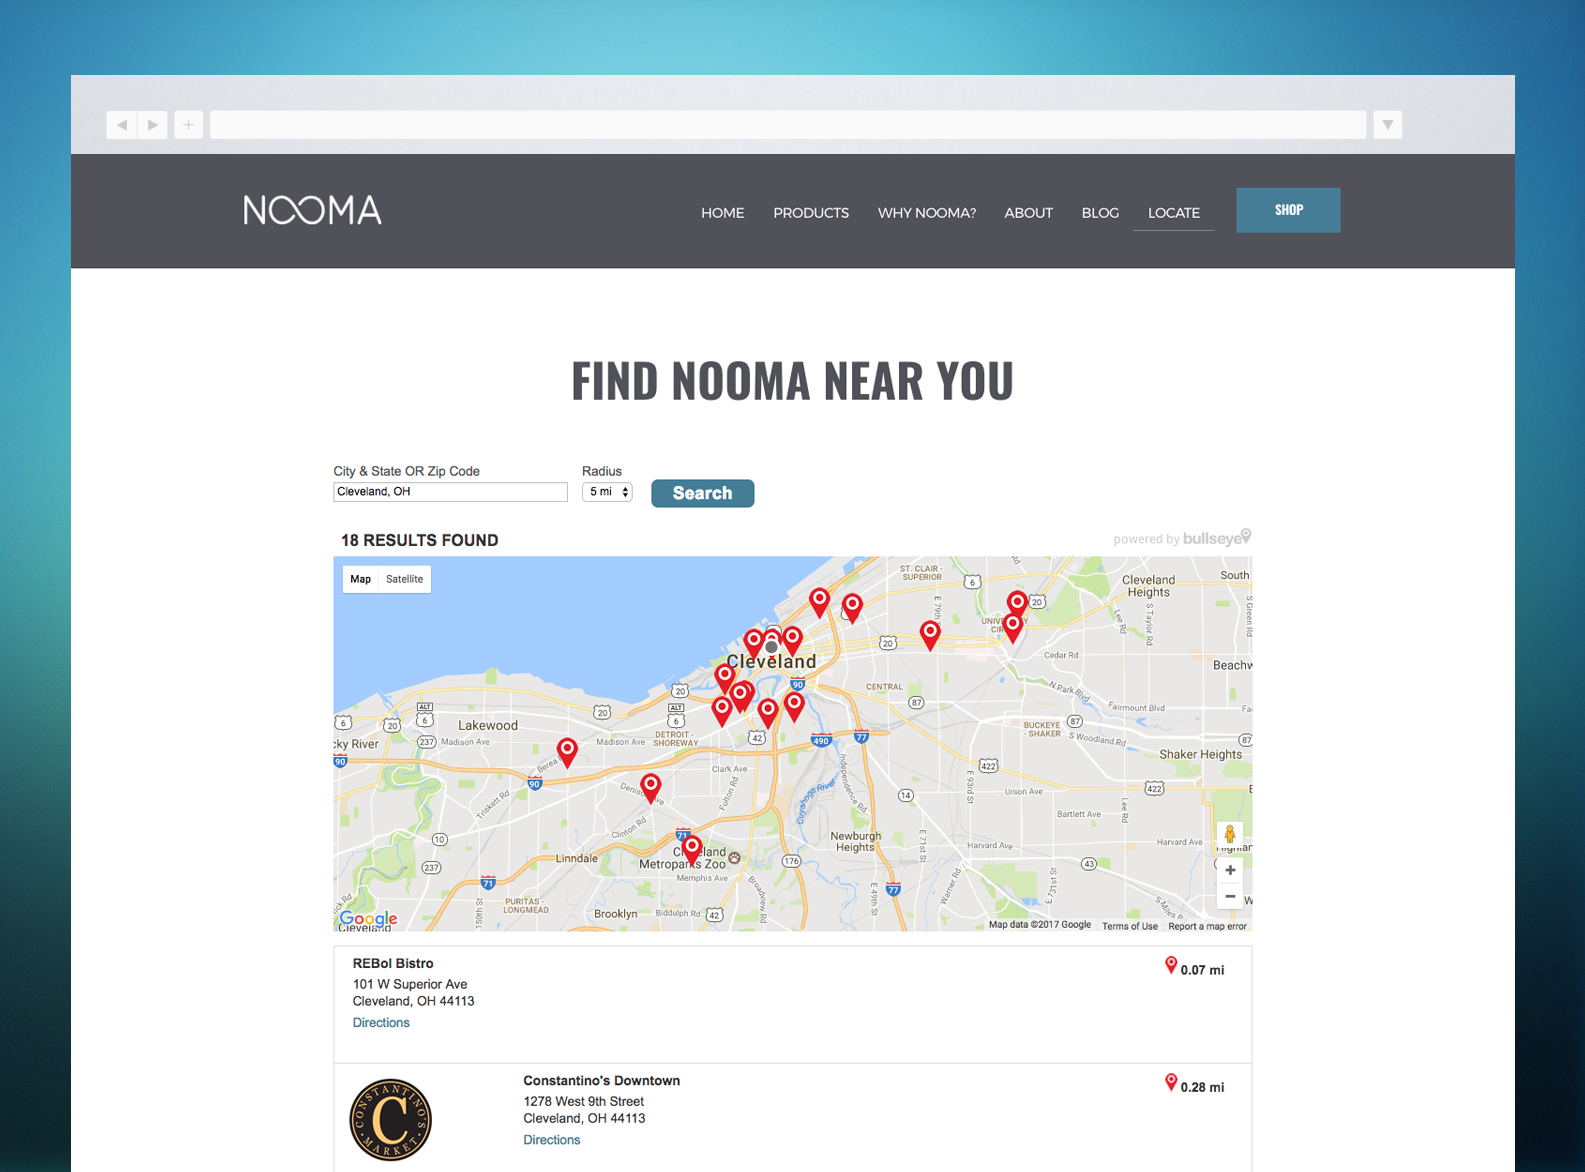 NOOMA Website Locator